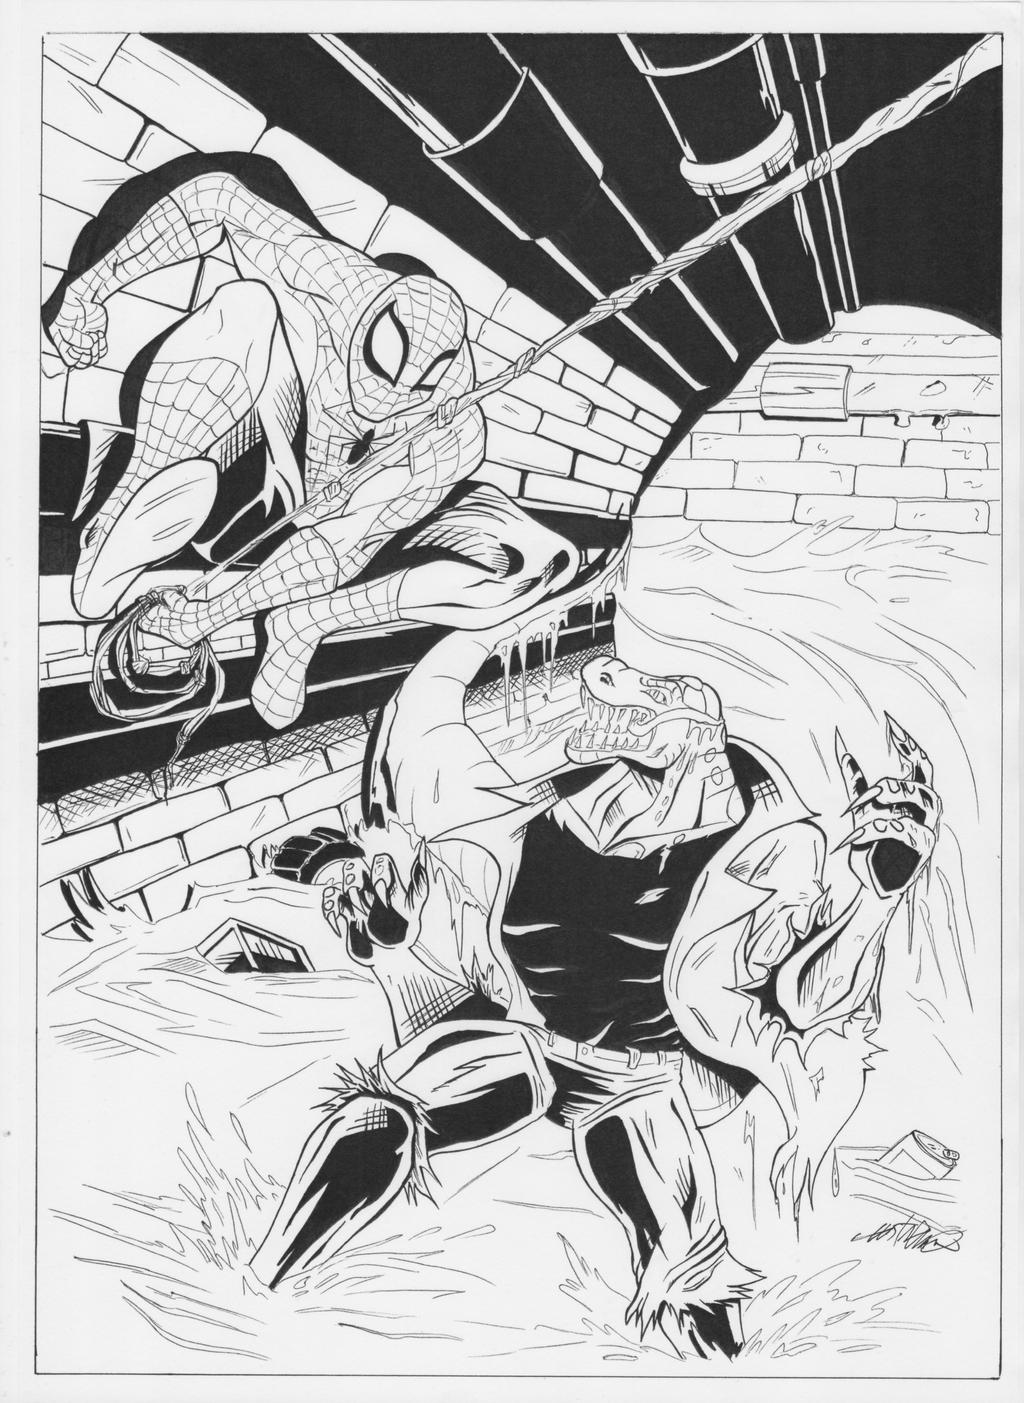 marvel lizard coloring pages spider man vs lizard ink by gustavoliveira on deviantart marvel pages lizard coloring